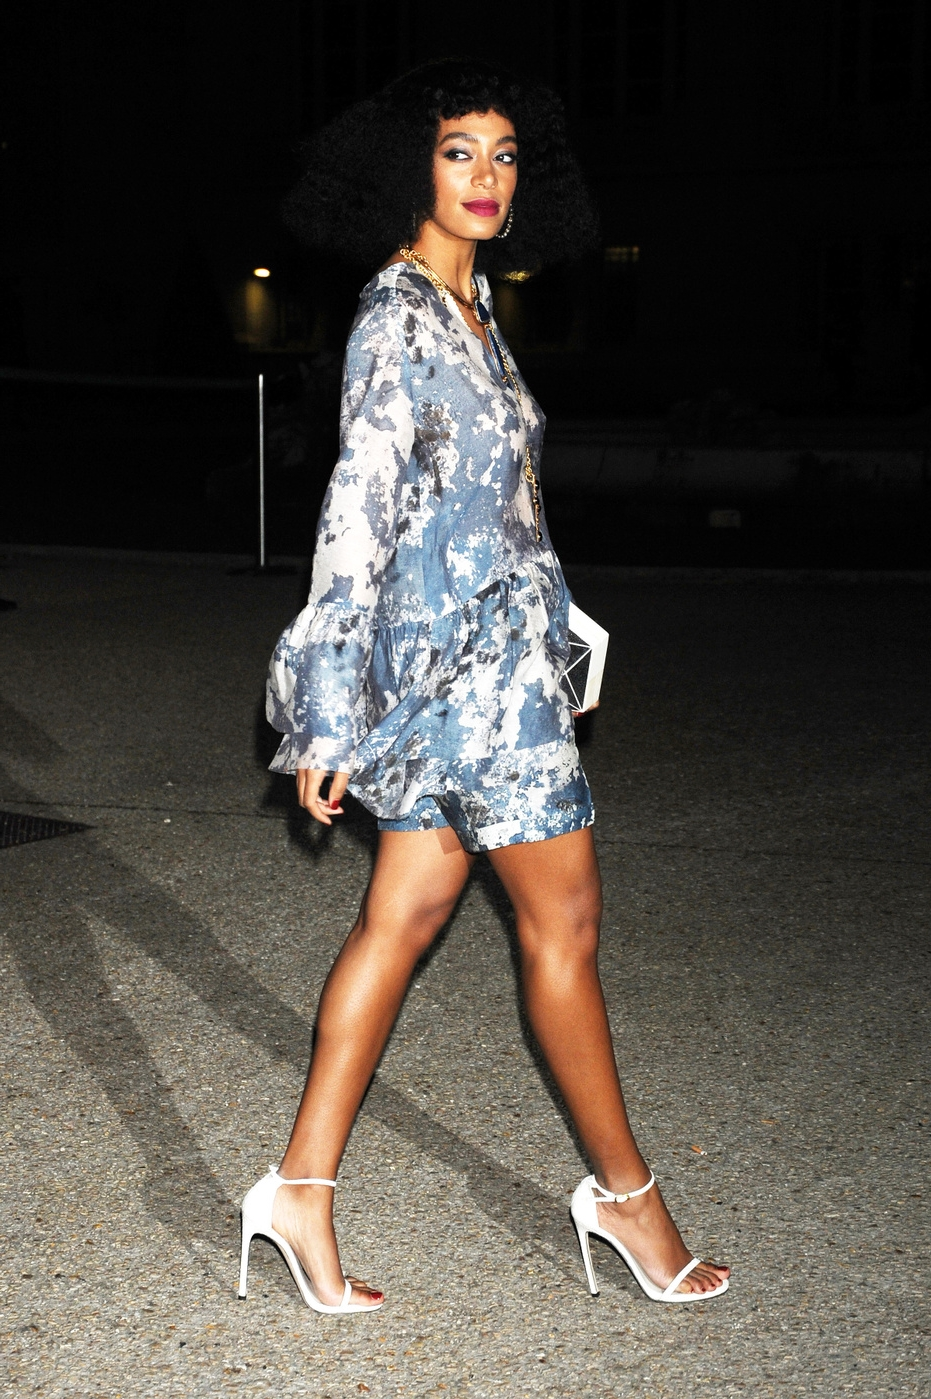 fabulous-looks-of-the-day-solange-knowles-26-feb-2014.jpg